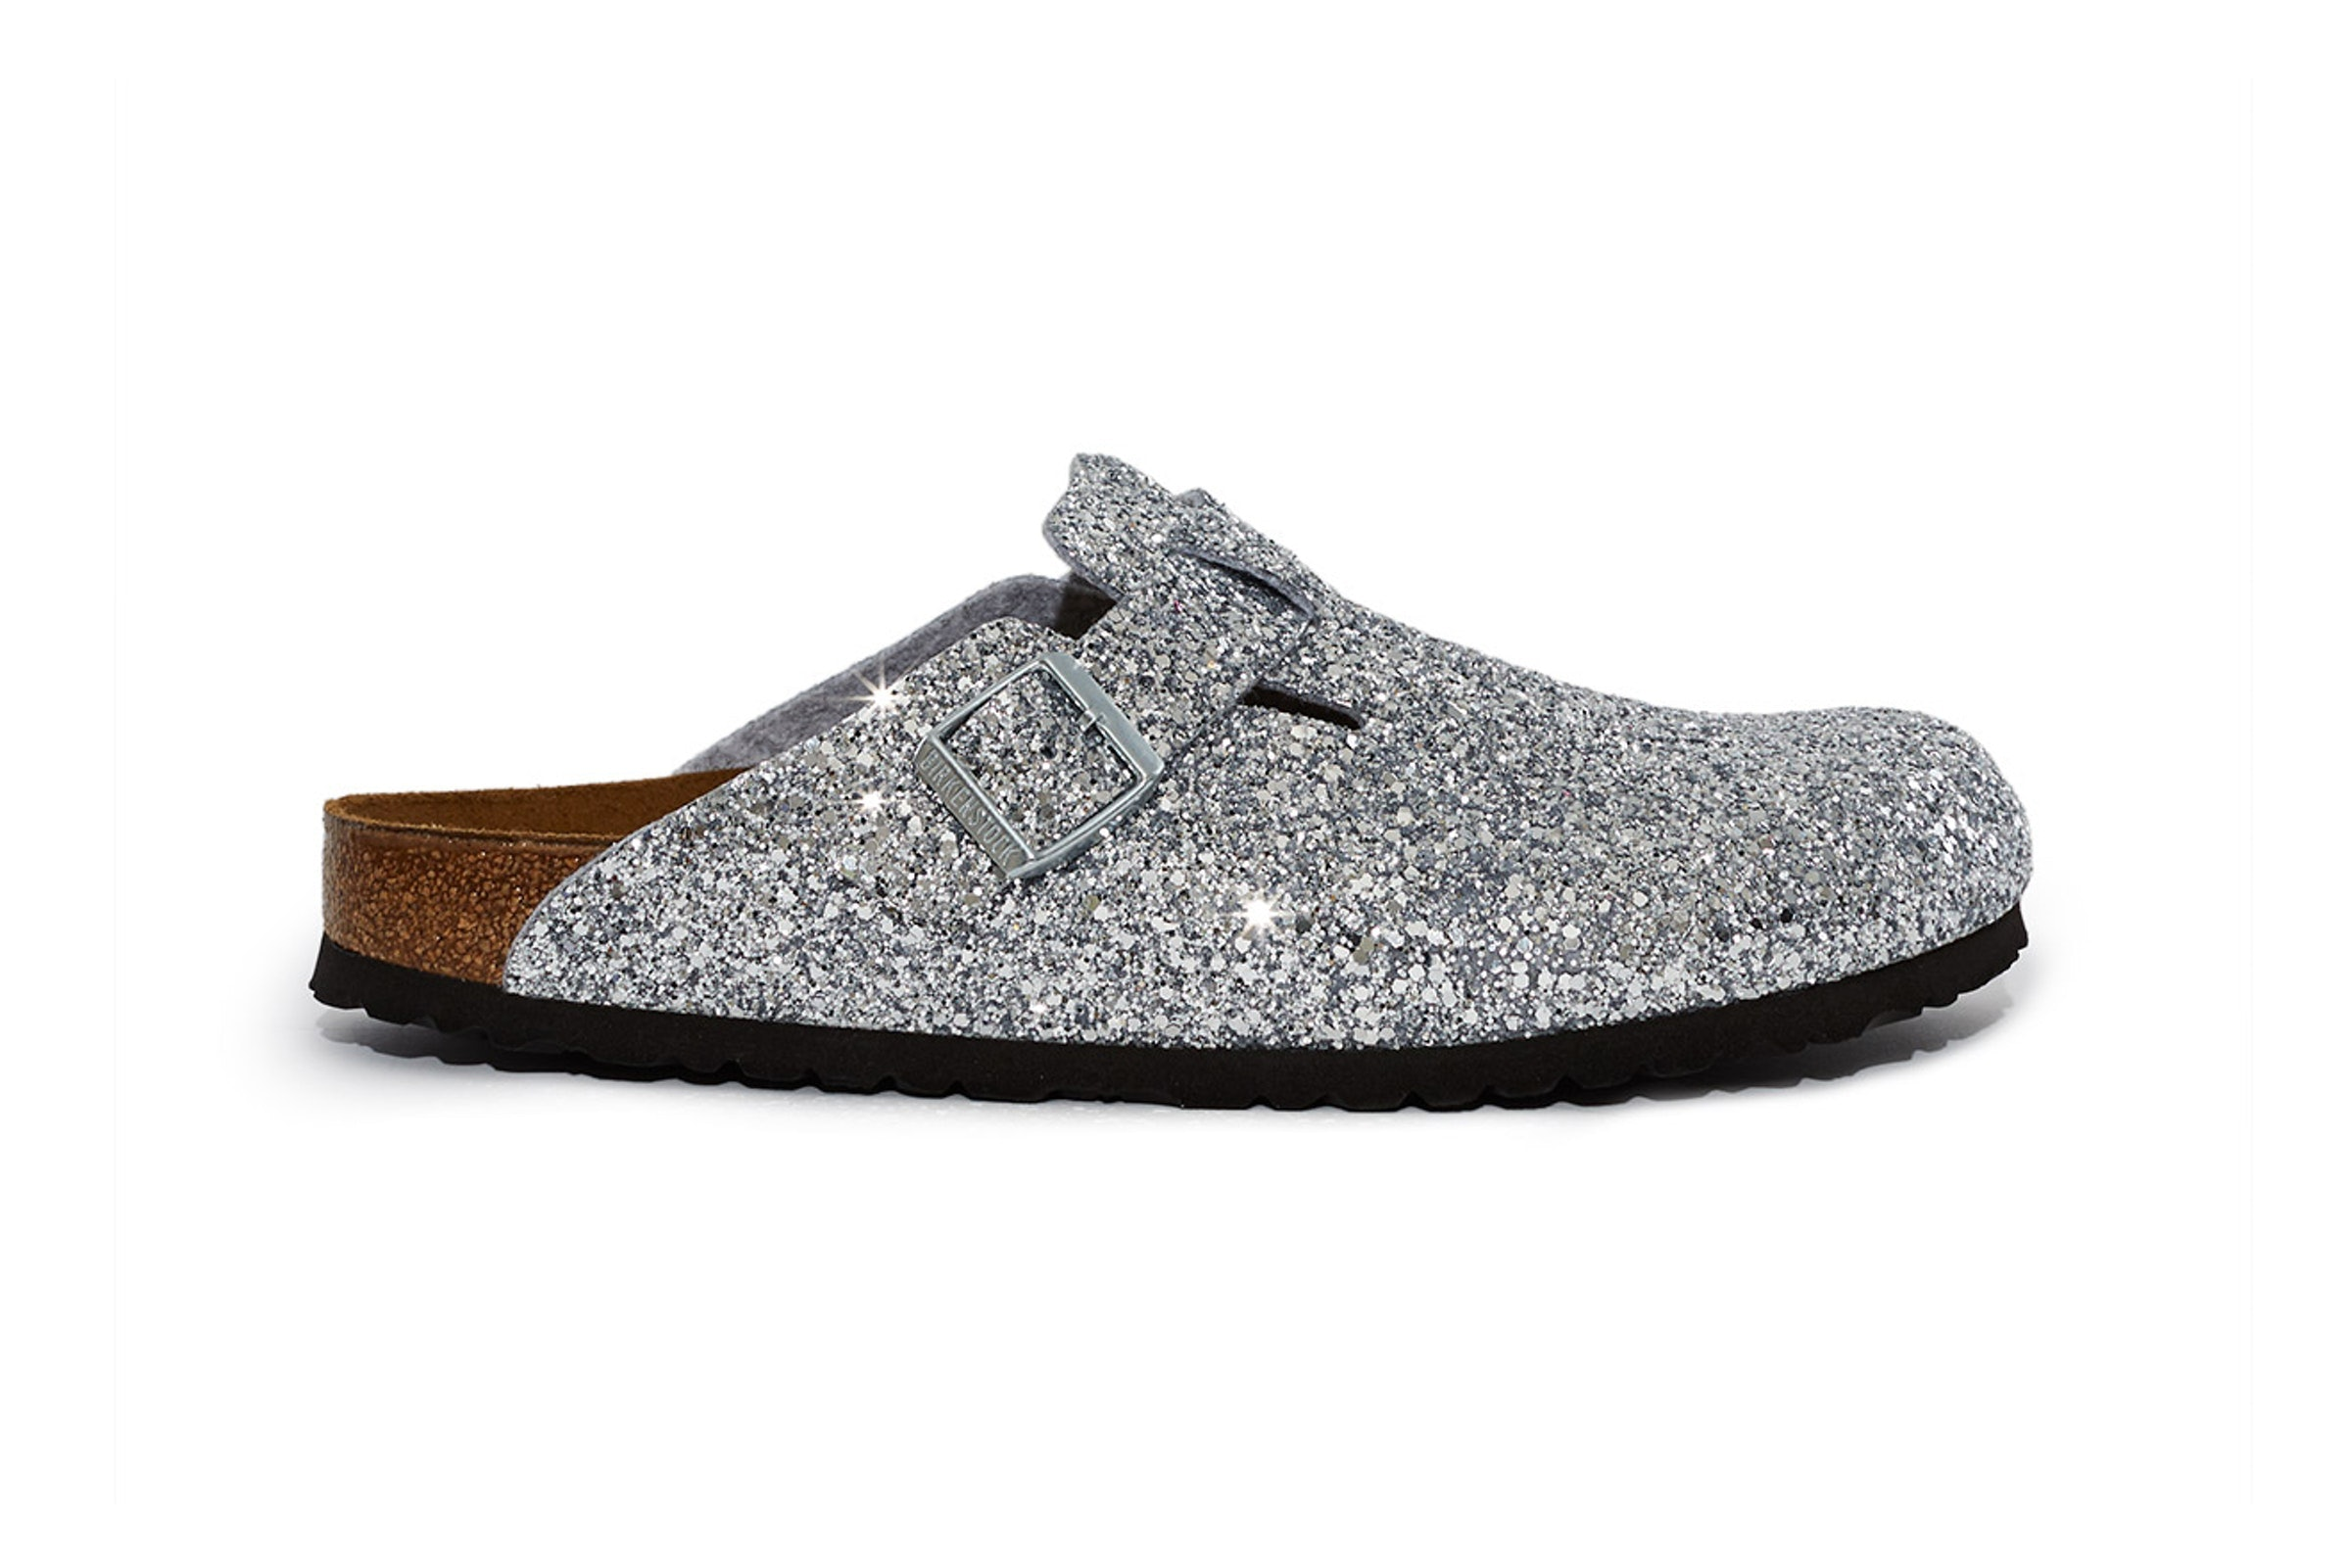 10d206aaa58e Opening Ceremony s Glitter Birkenstocks Will Have You Seeing Stars